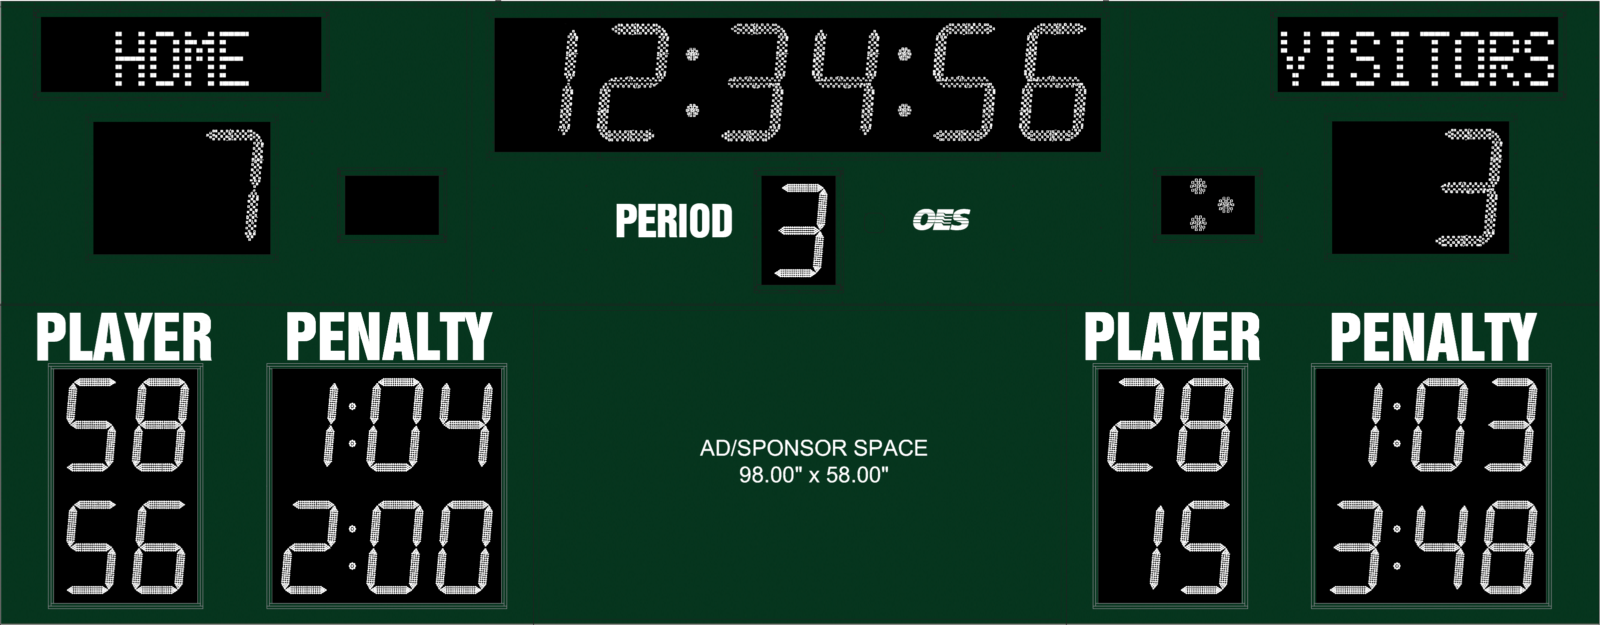 green scoreboard with sponsor space